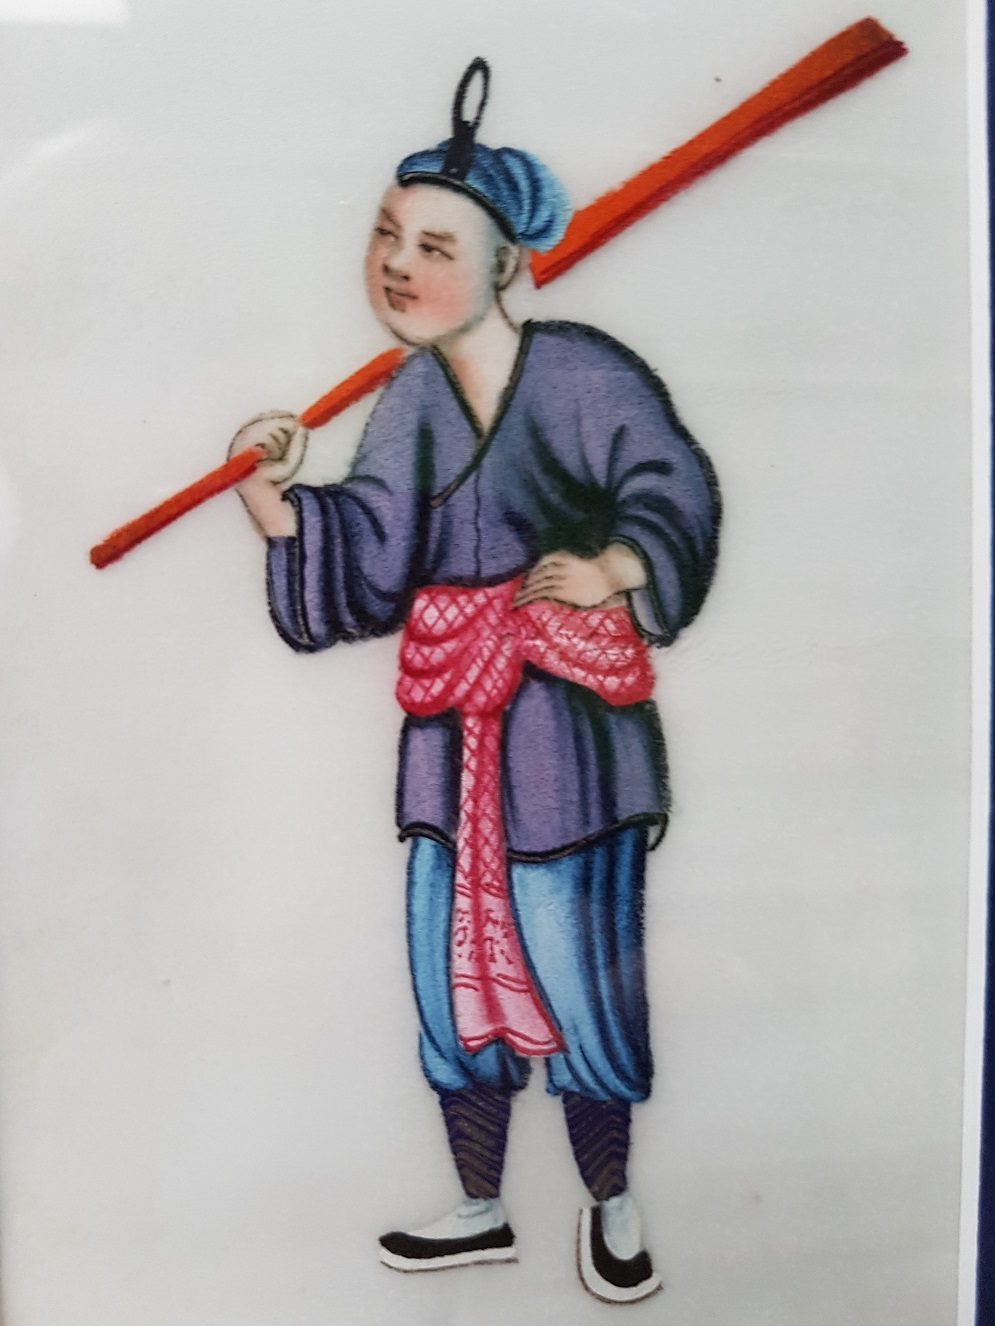 Pit paper Painting of a Chinese Fisherman with Rowing Implements